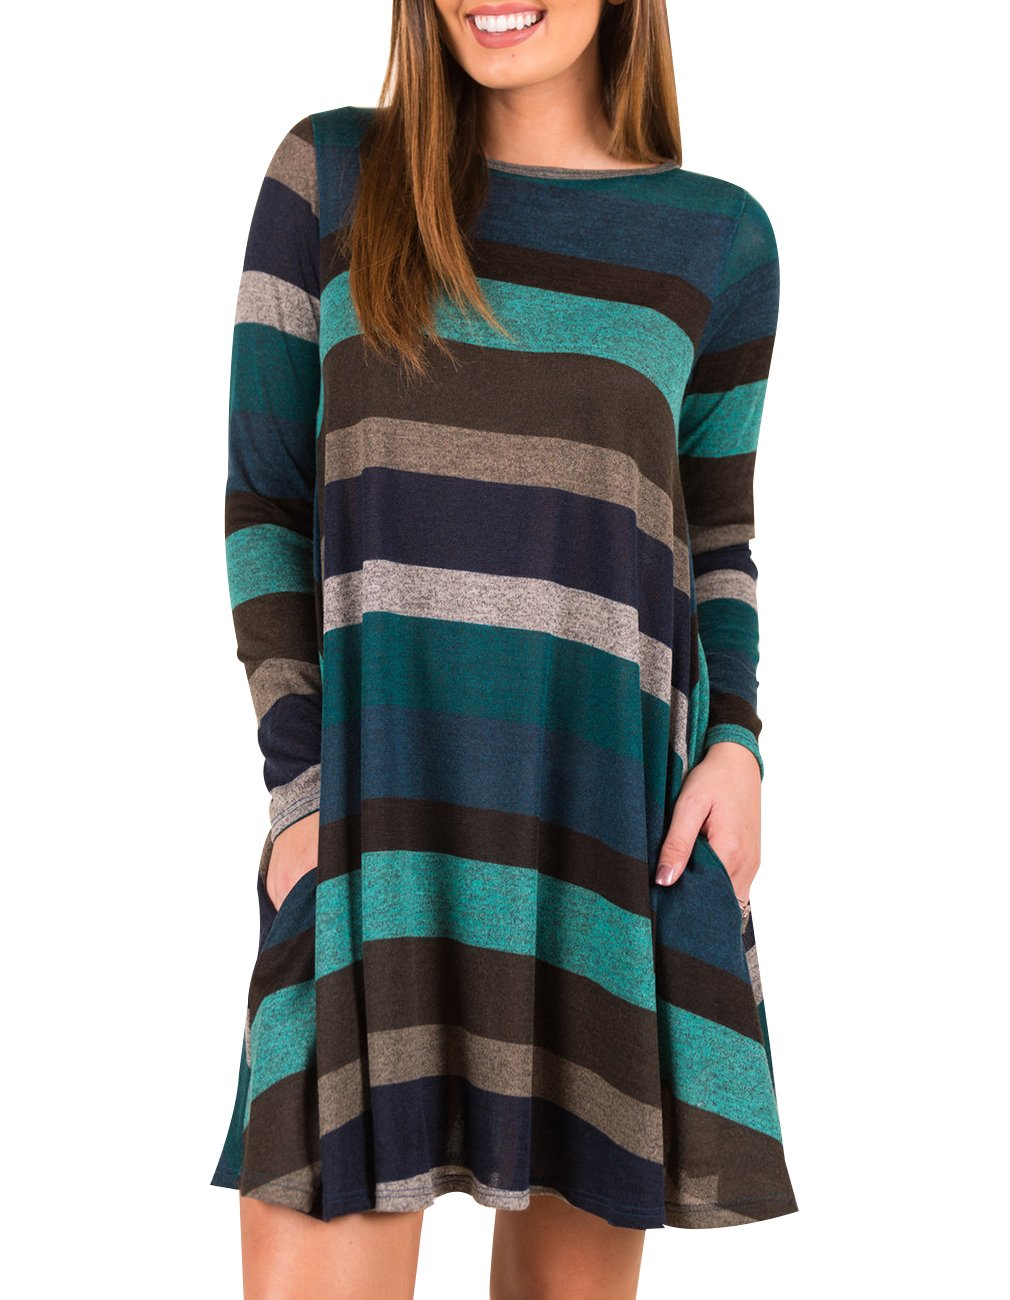 0d1d6b7aa0f Amazon.com: Women's Long Sleeve Striped Tunic Tops For Leggings Casual  Swing Dress With Pockets (Large, Blue): Kitchen & Dining